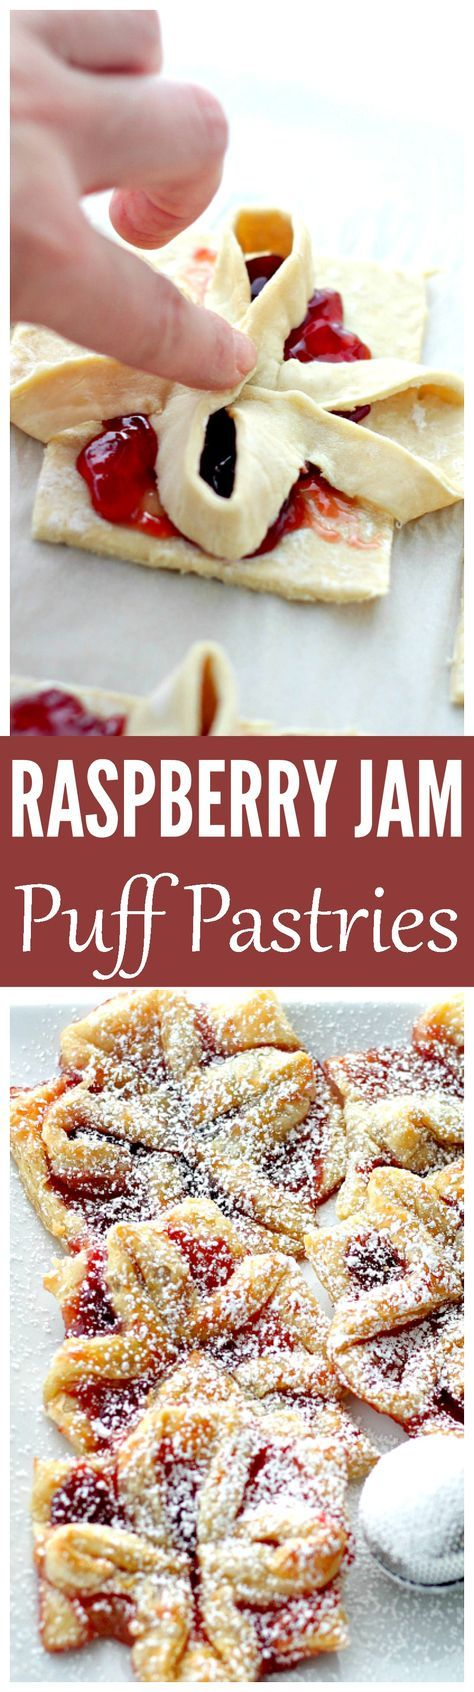 These Raspberry Jam Puff Pastries are easy to assemble and so satisfying. The layers of flaky buttery puff pastry topped with sweet jam make for an impressive and indulgent treat!